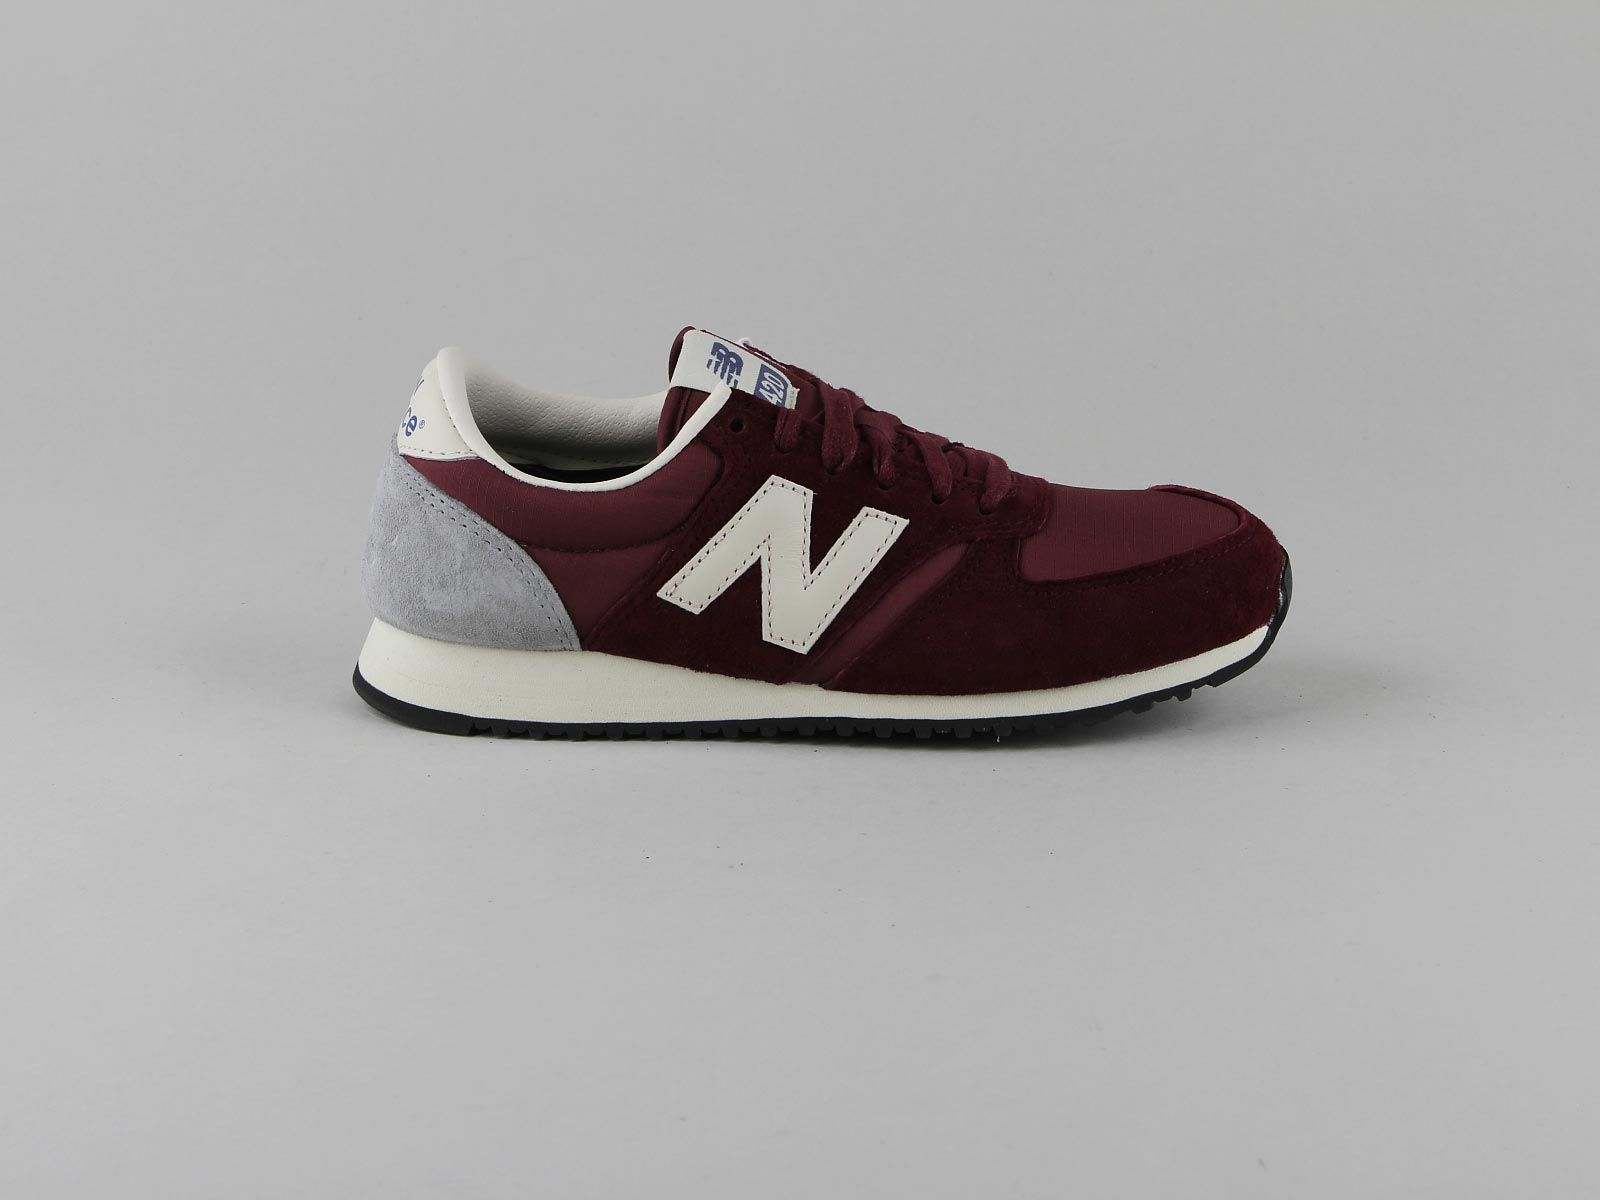 new balance femme bordeaux u420 new balance